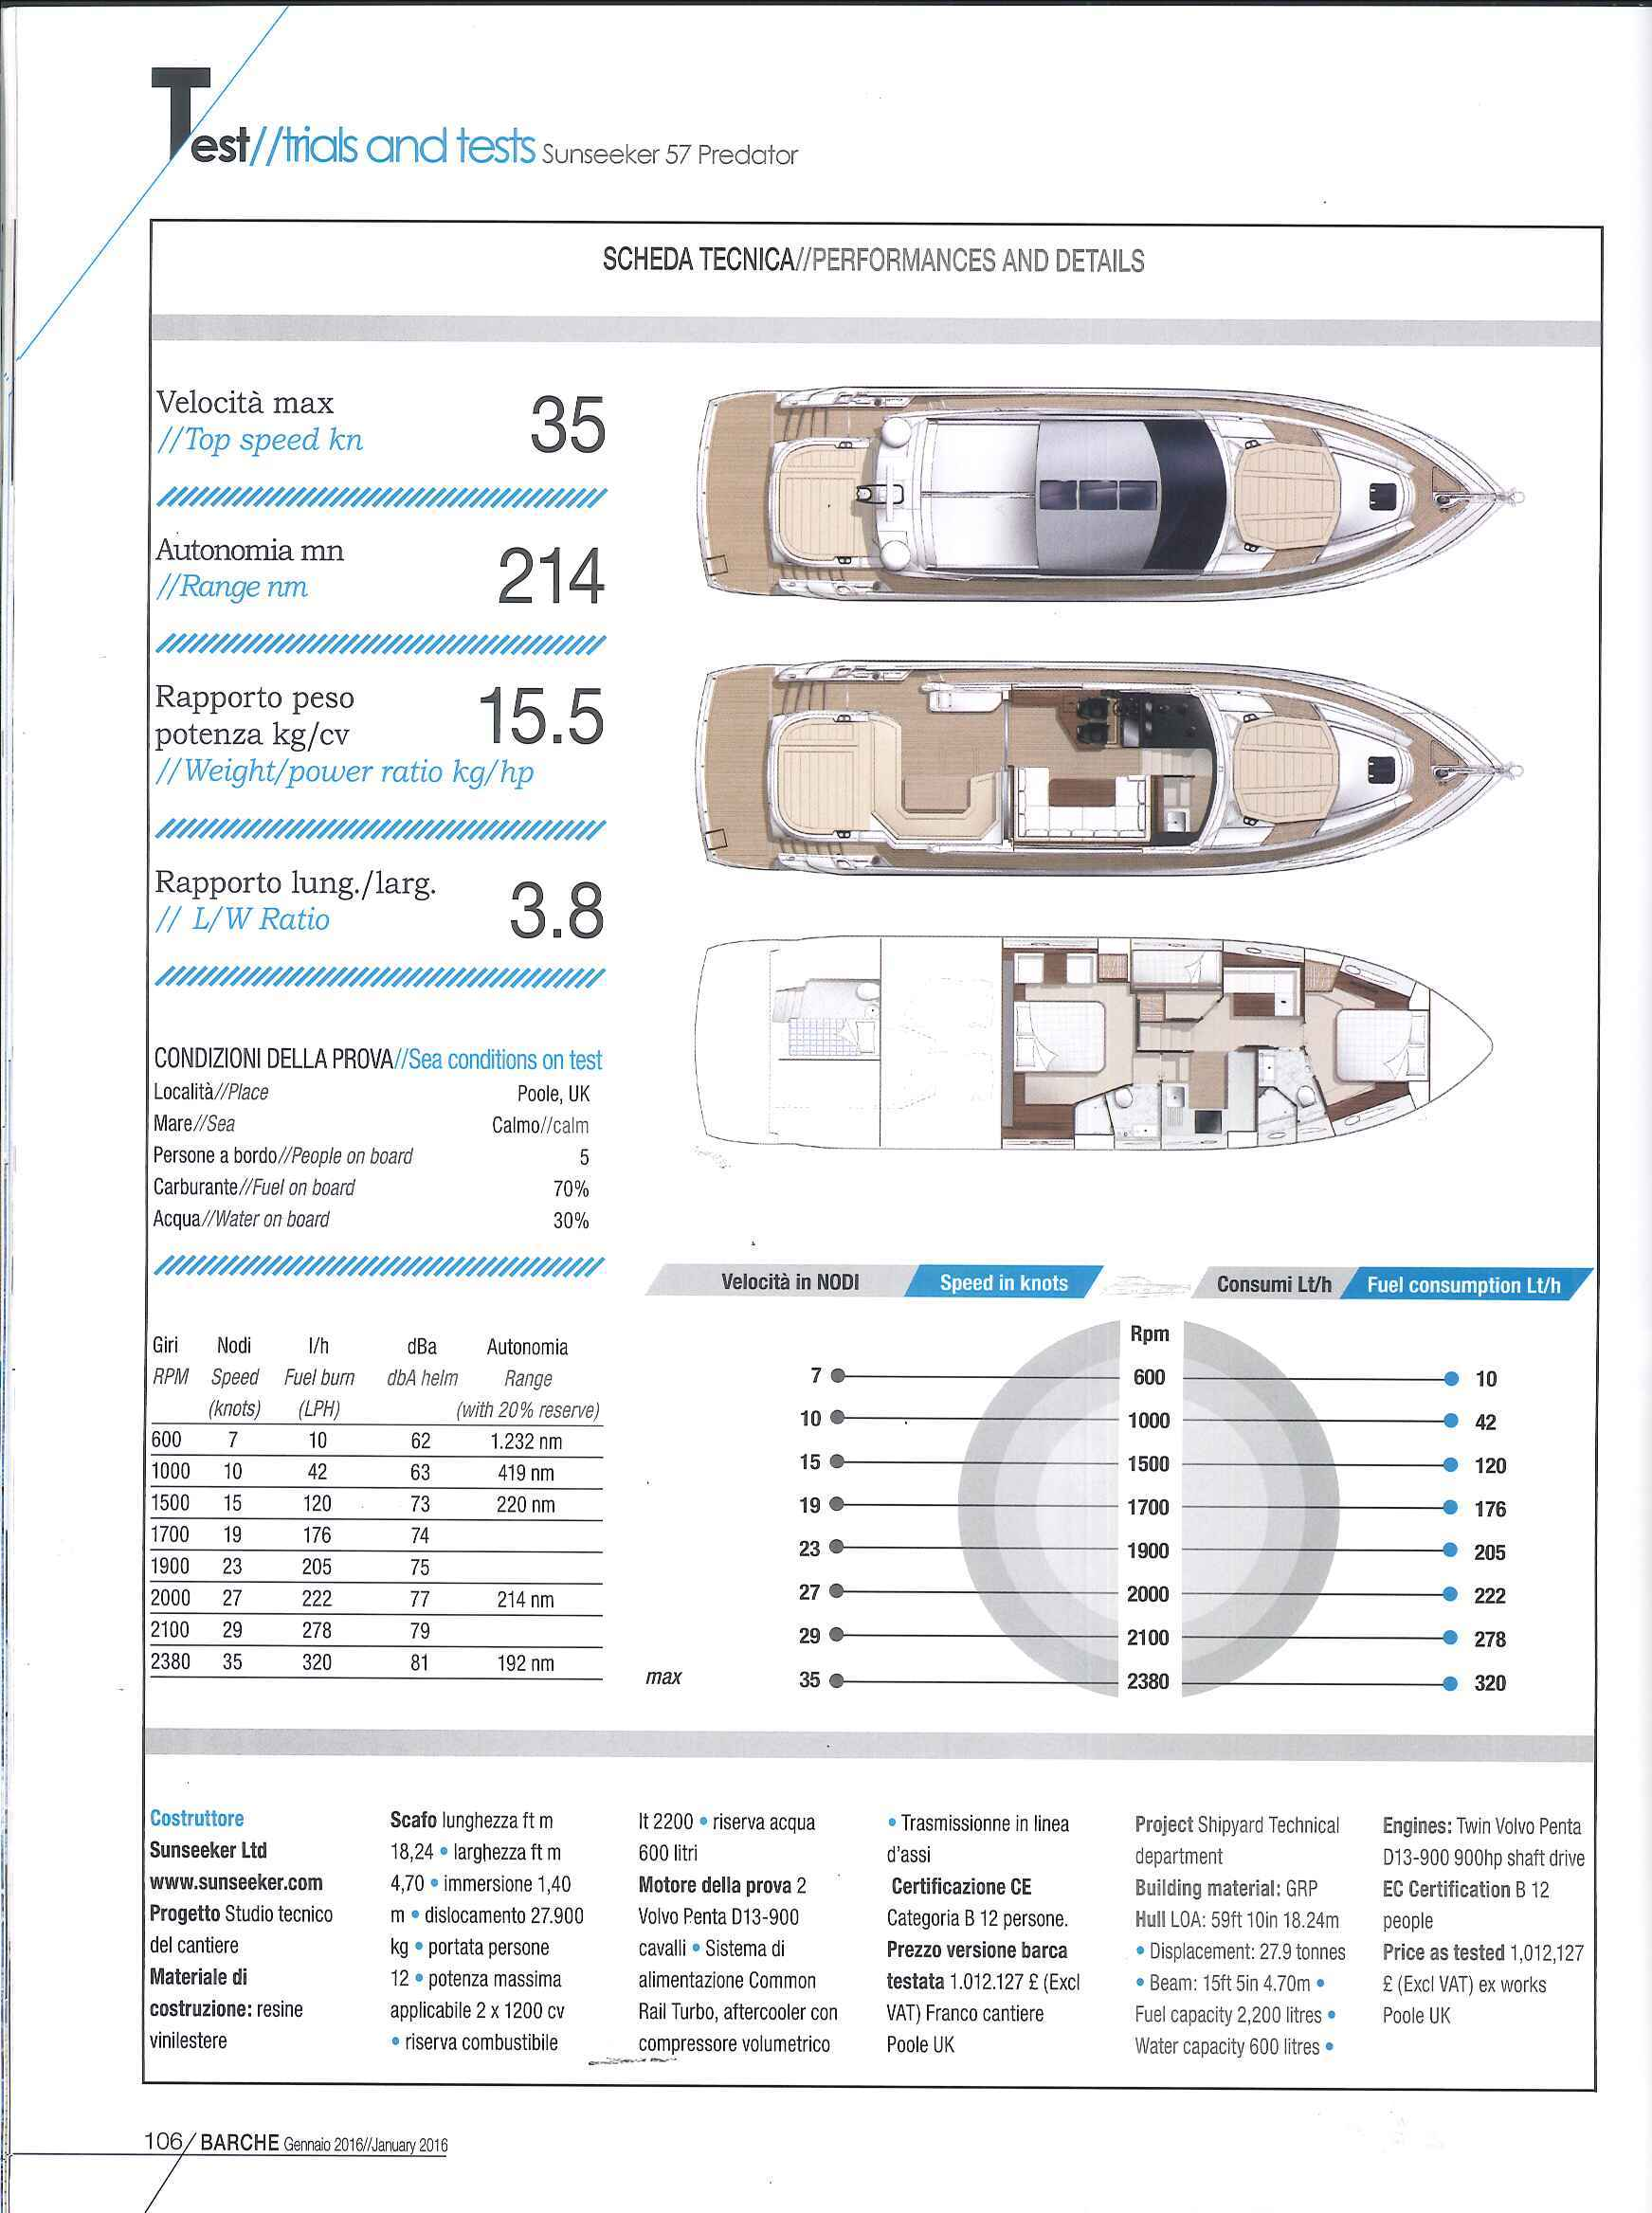 2016 01 PRESS SUNSEEKER 57 PREDATOR BARCHE (5).jpg